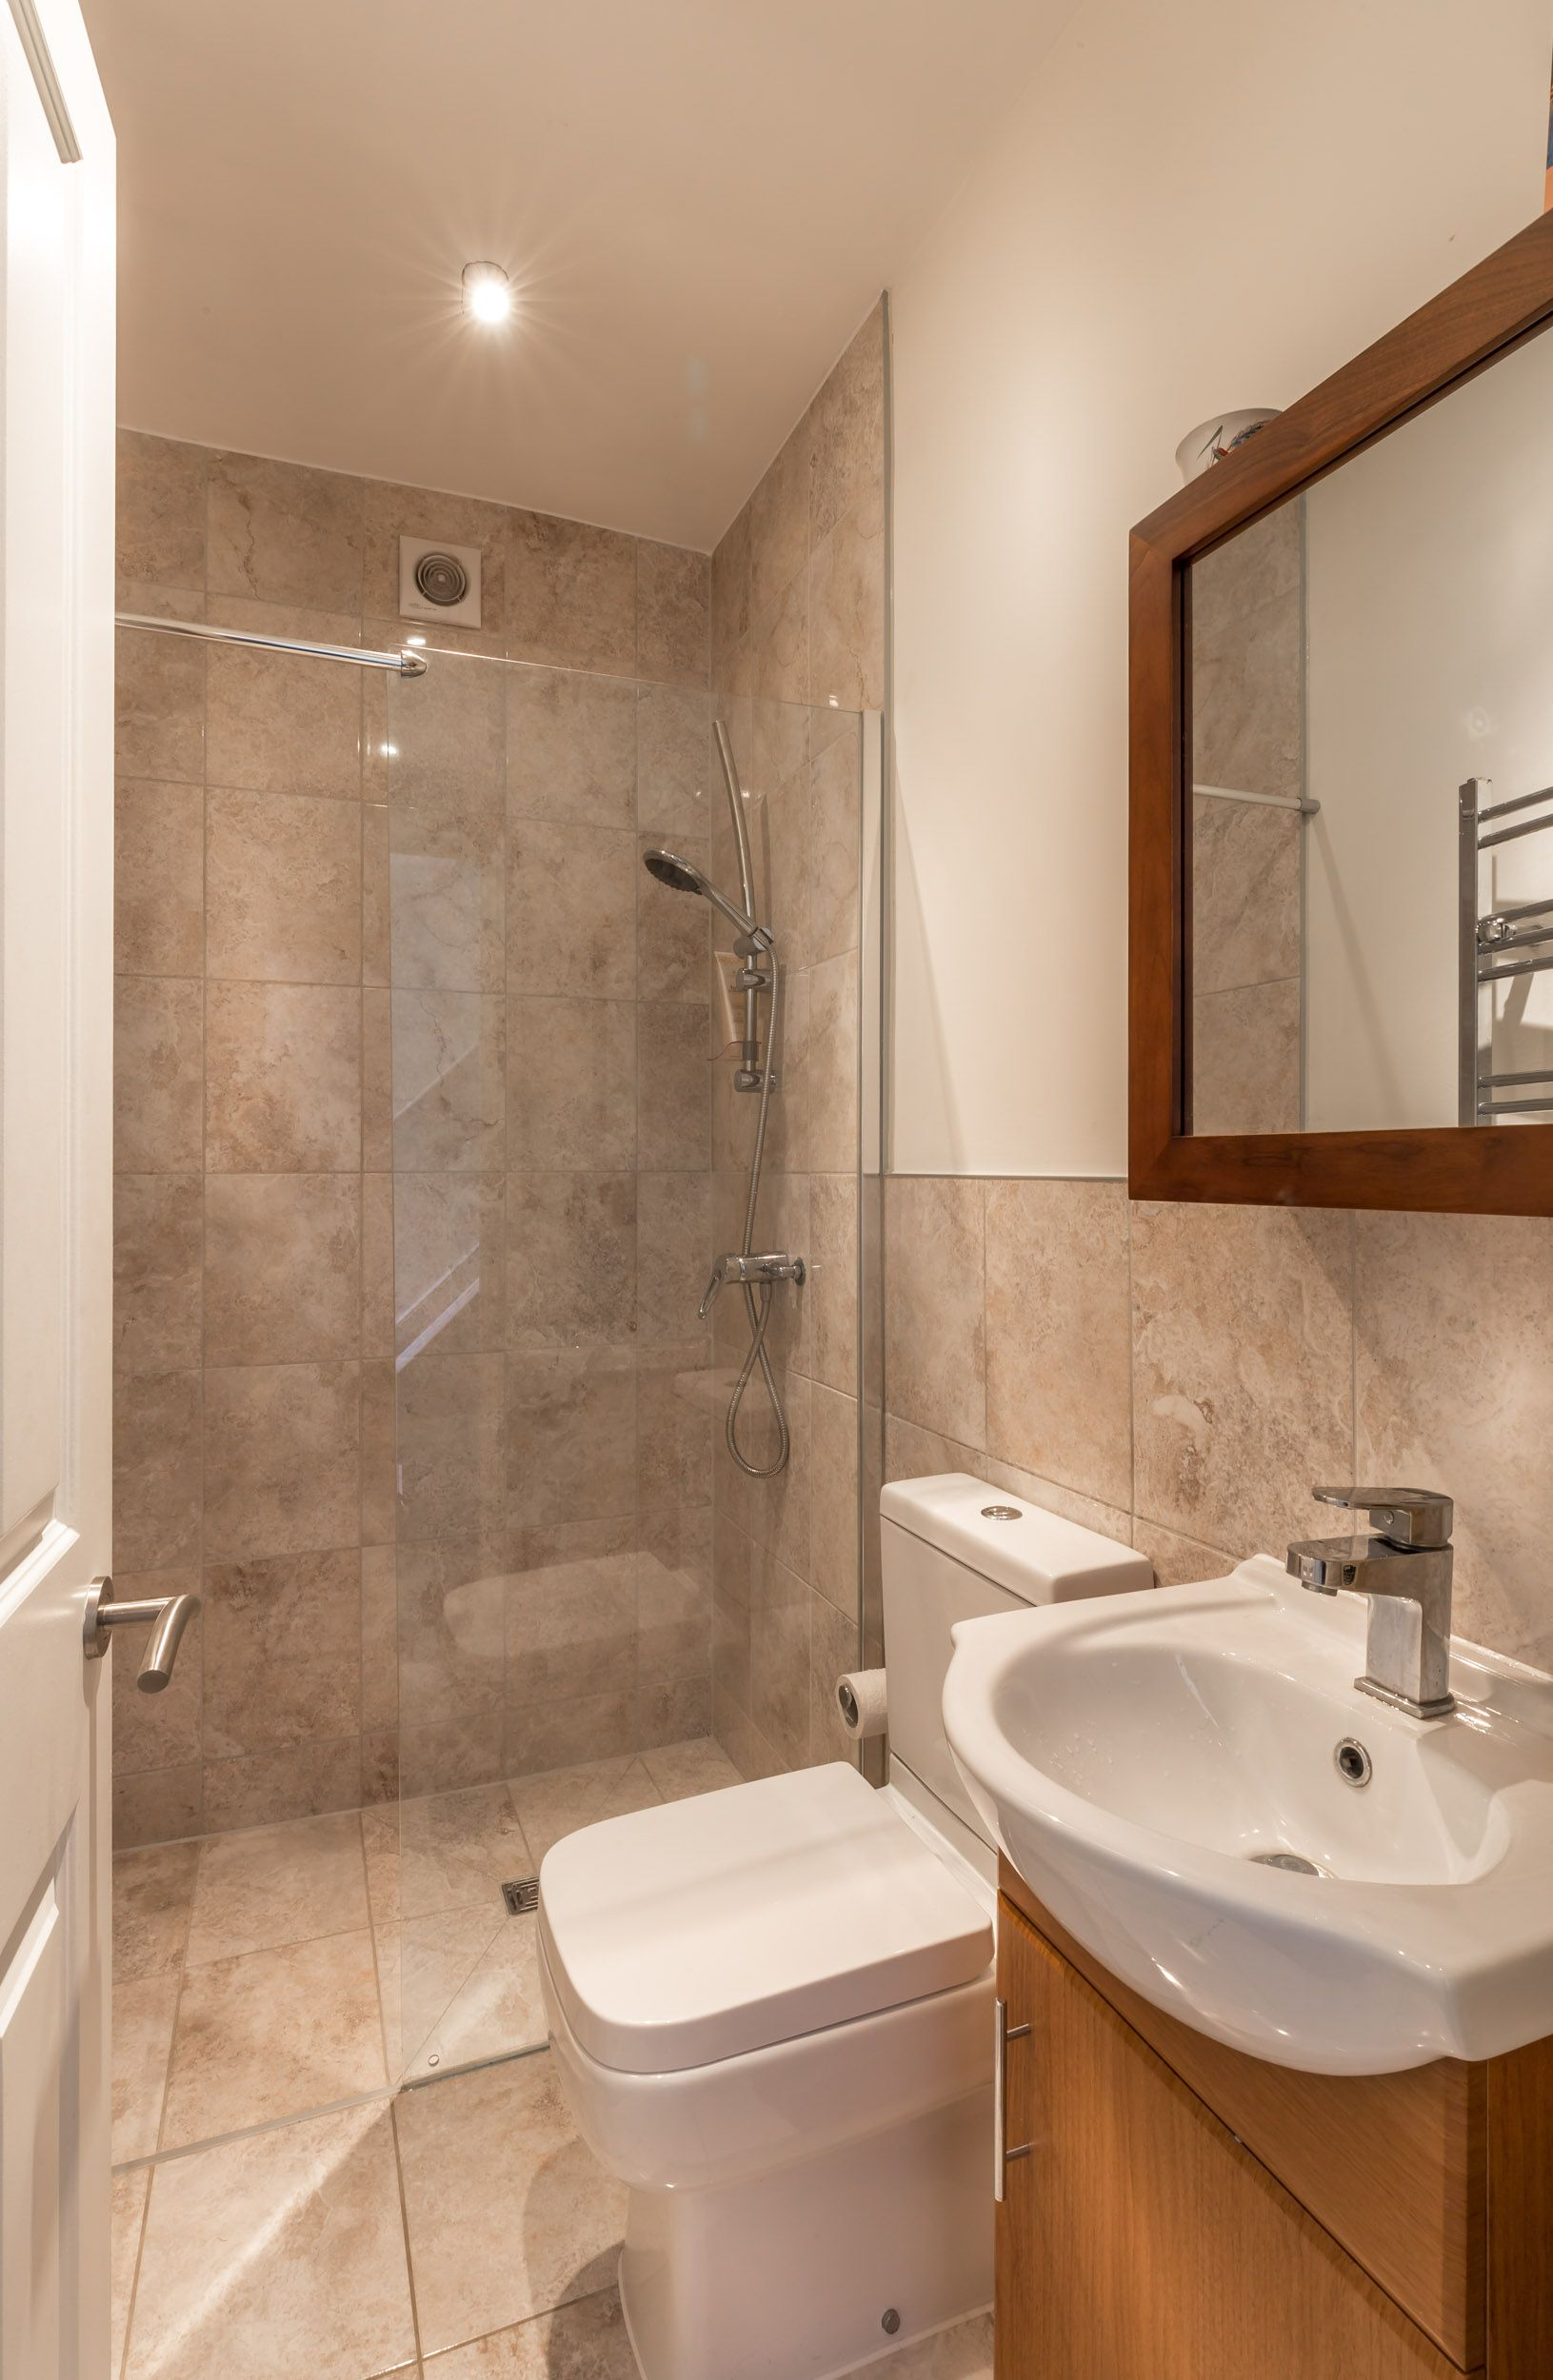 Small dodern downstairs shower room WC